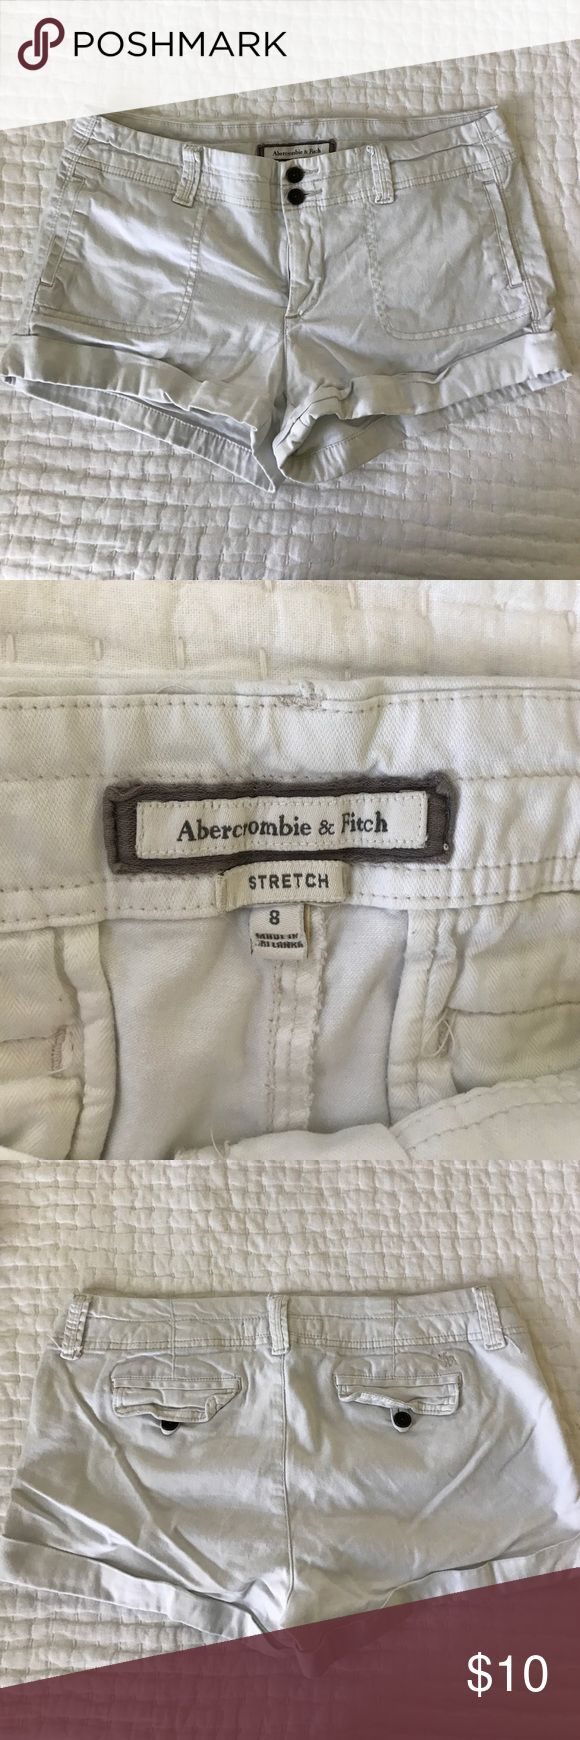 Abercrombie and Fitch white shorts sz 8 White Abercrombie and Fitch shorts with stretch Abercrombie & Fitch Shorts